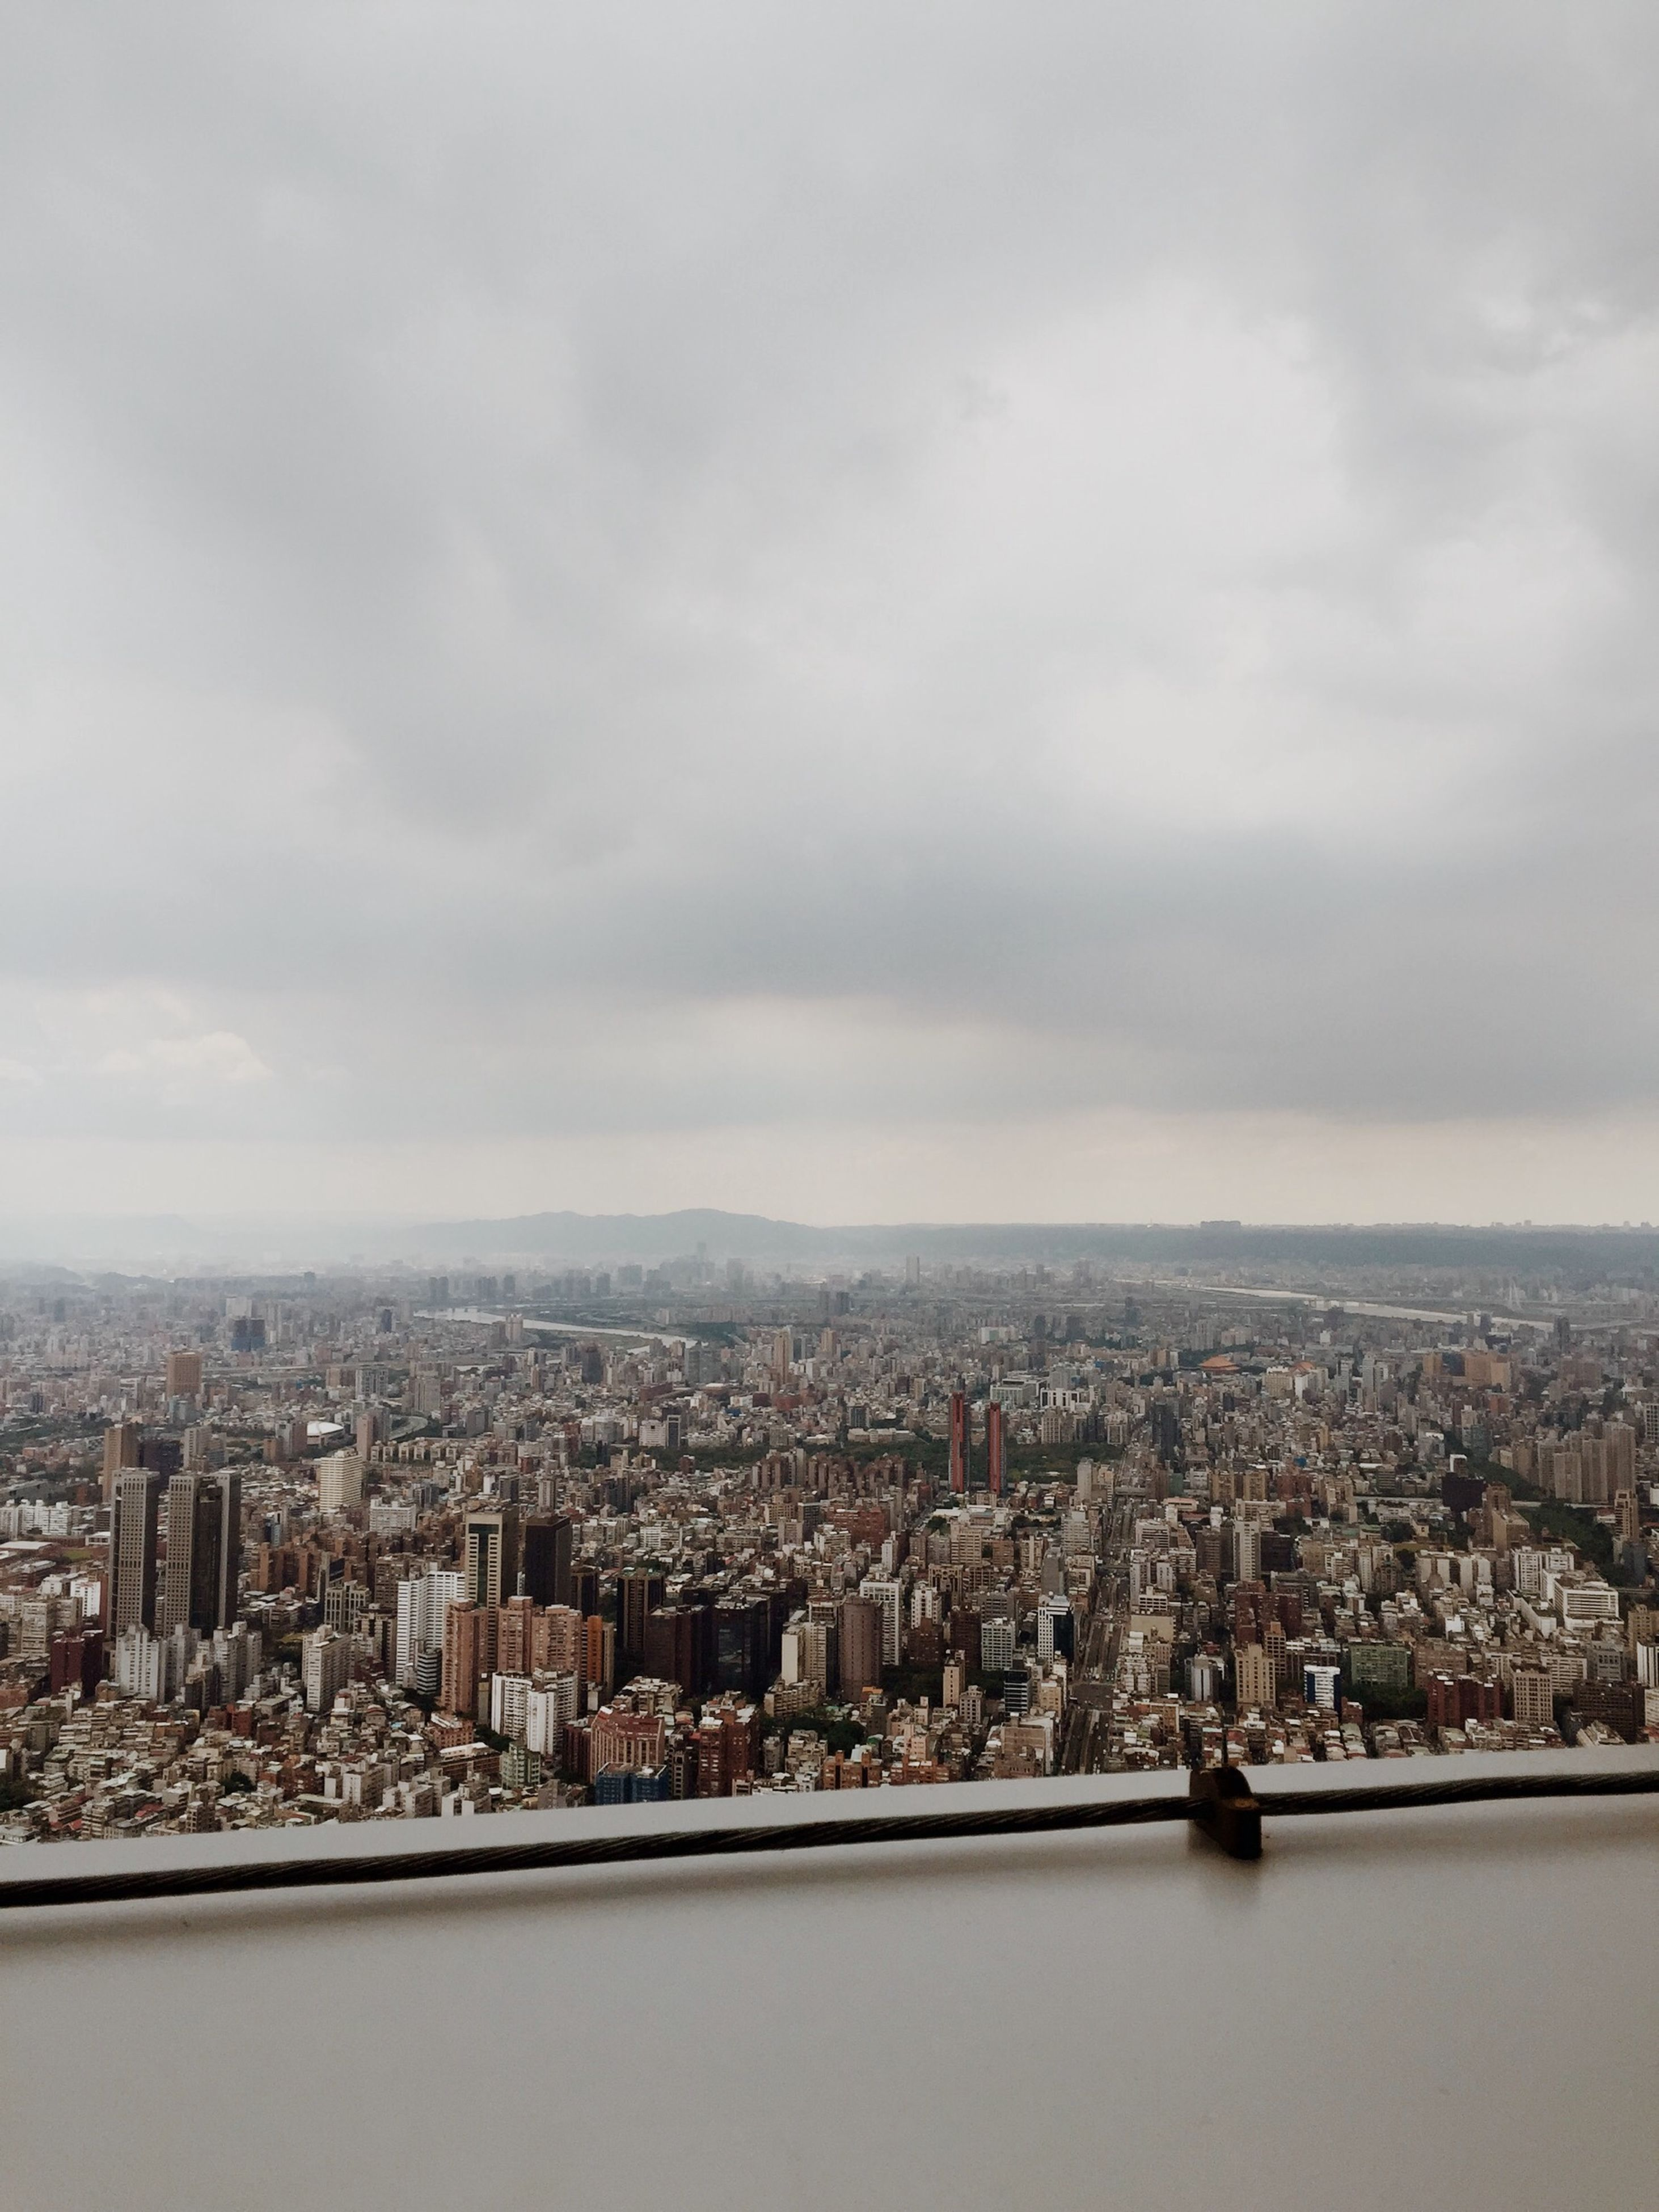 cityscape, city, building exterior, architecture, sky, built structure, crowded, cloud - sky, residential district, high angle view, water, cloudy, cloud, river, residential building, sea, skyscraper, residential structure, city life, no people